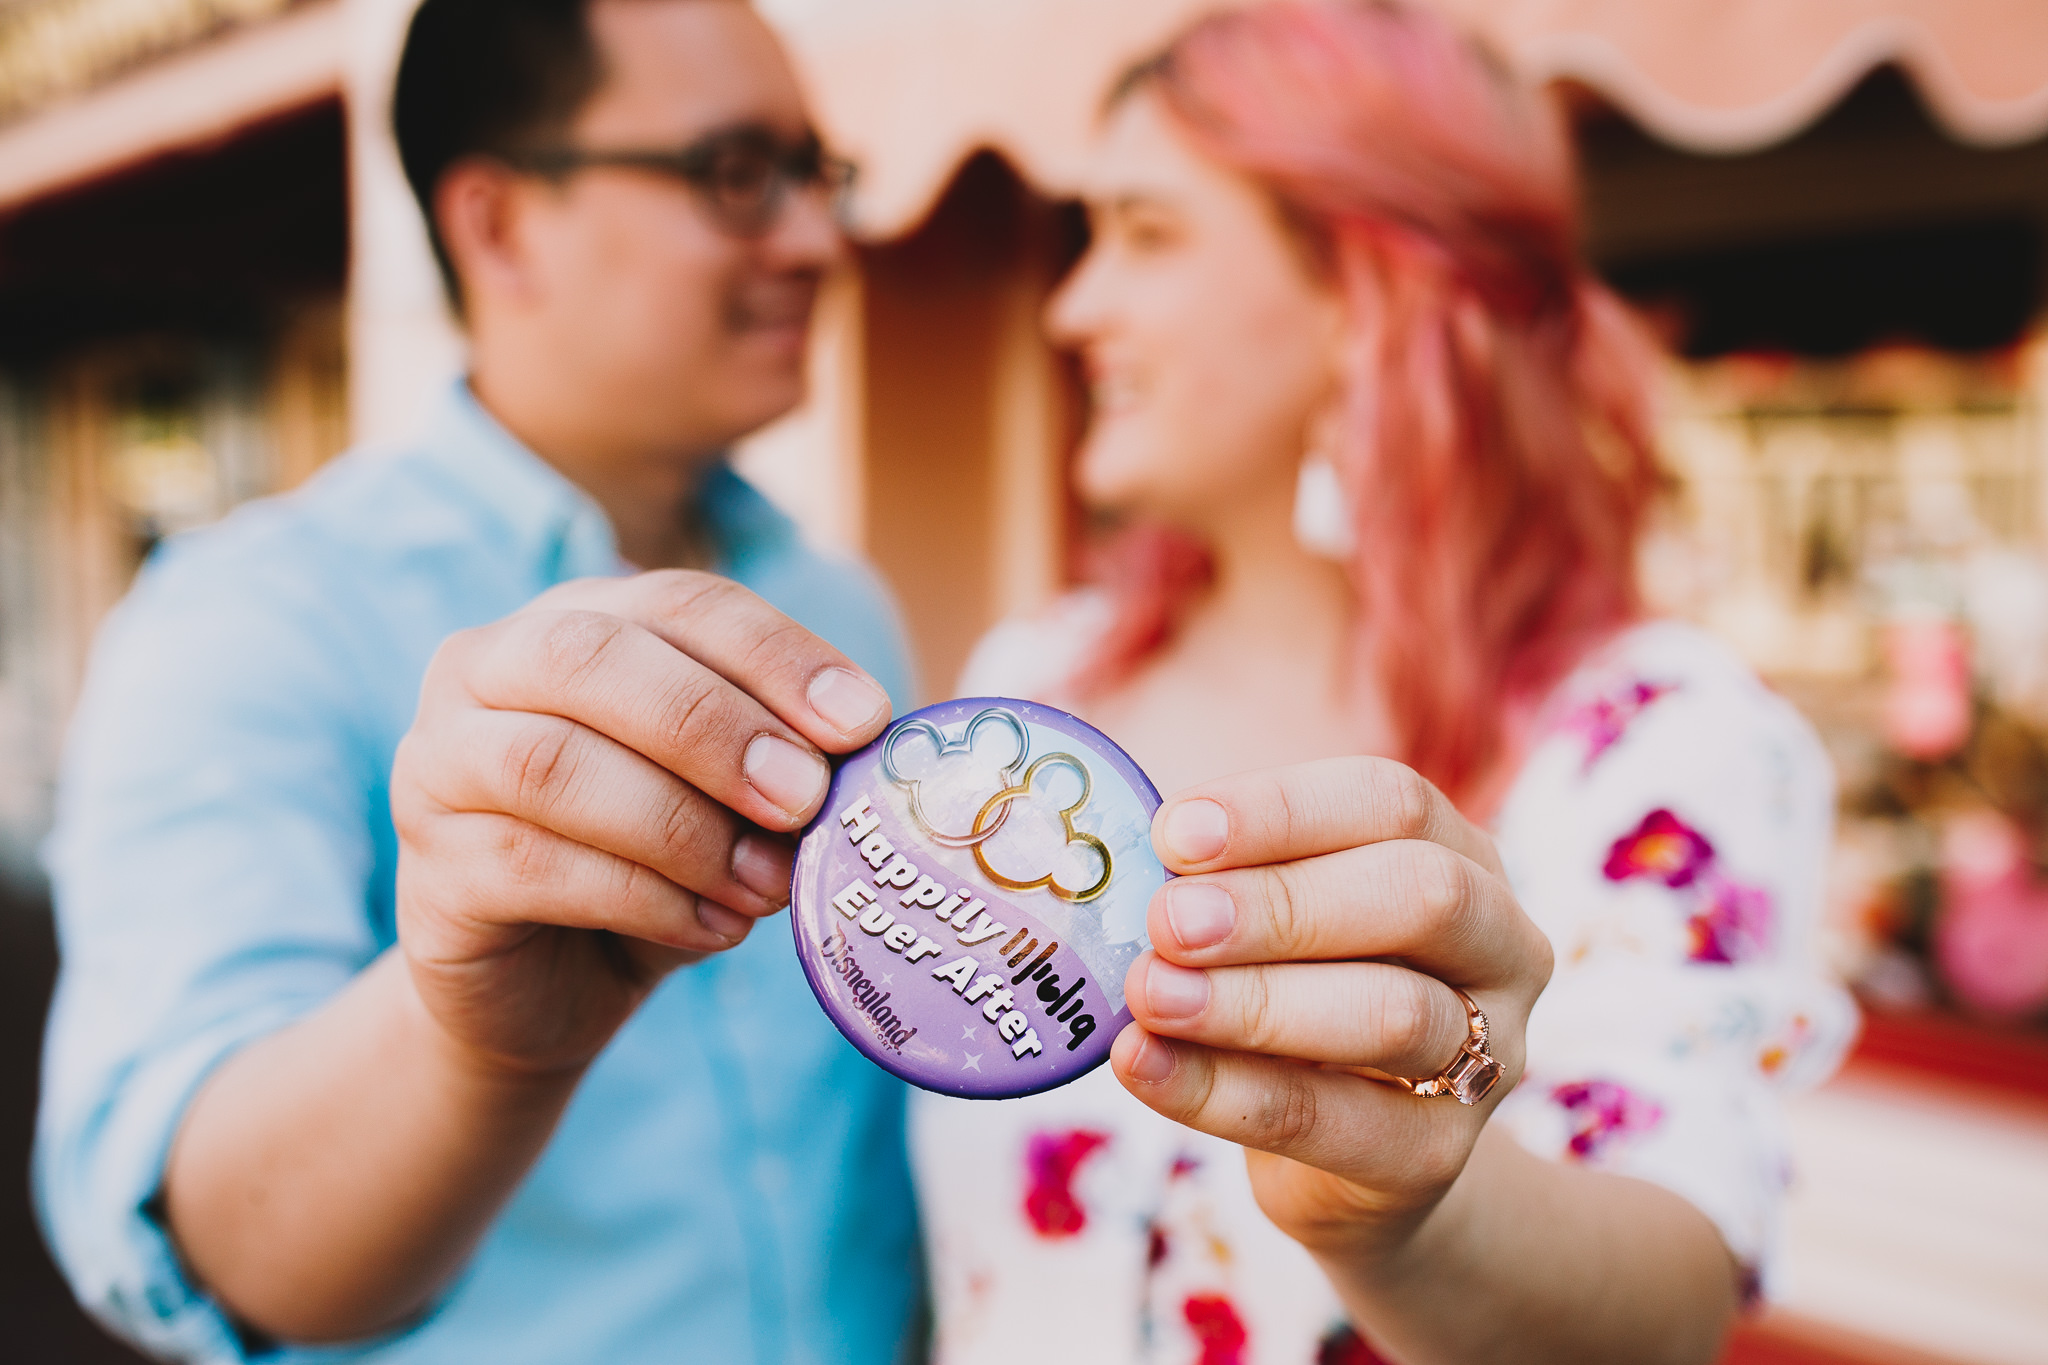 Archer Inspired Photography Disneyland Engagement Wedding Session Southern California Kayla and Kevin Lifestyle Documentary-118.jpg